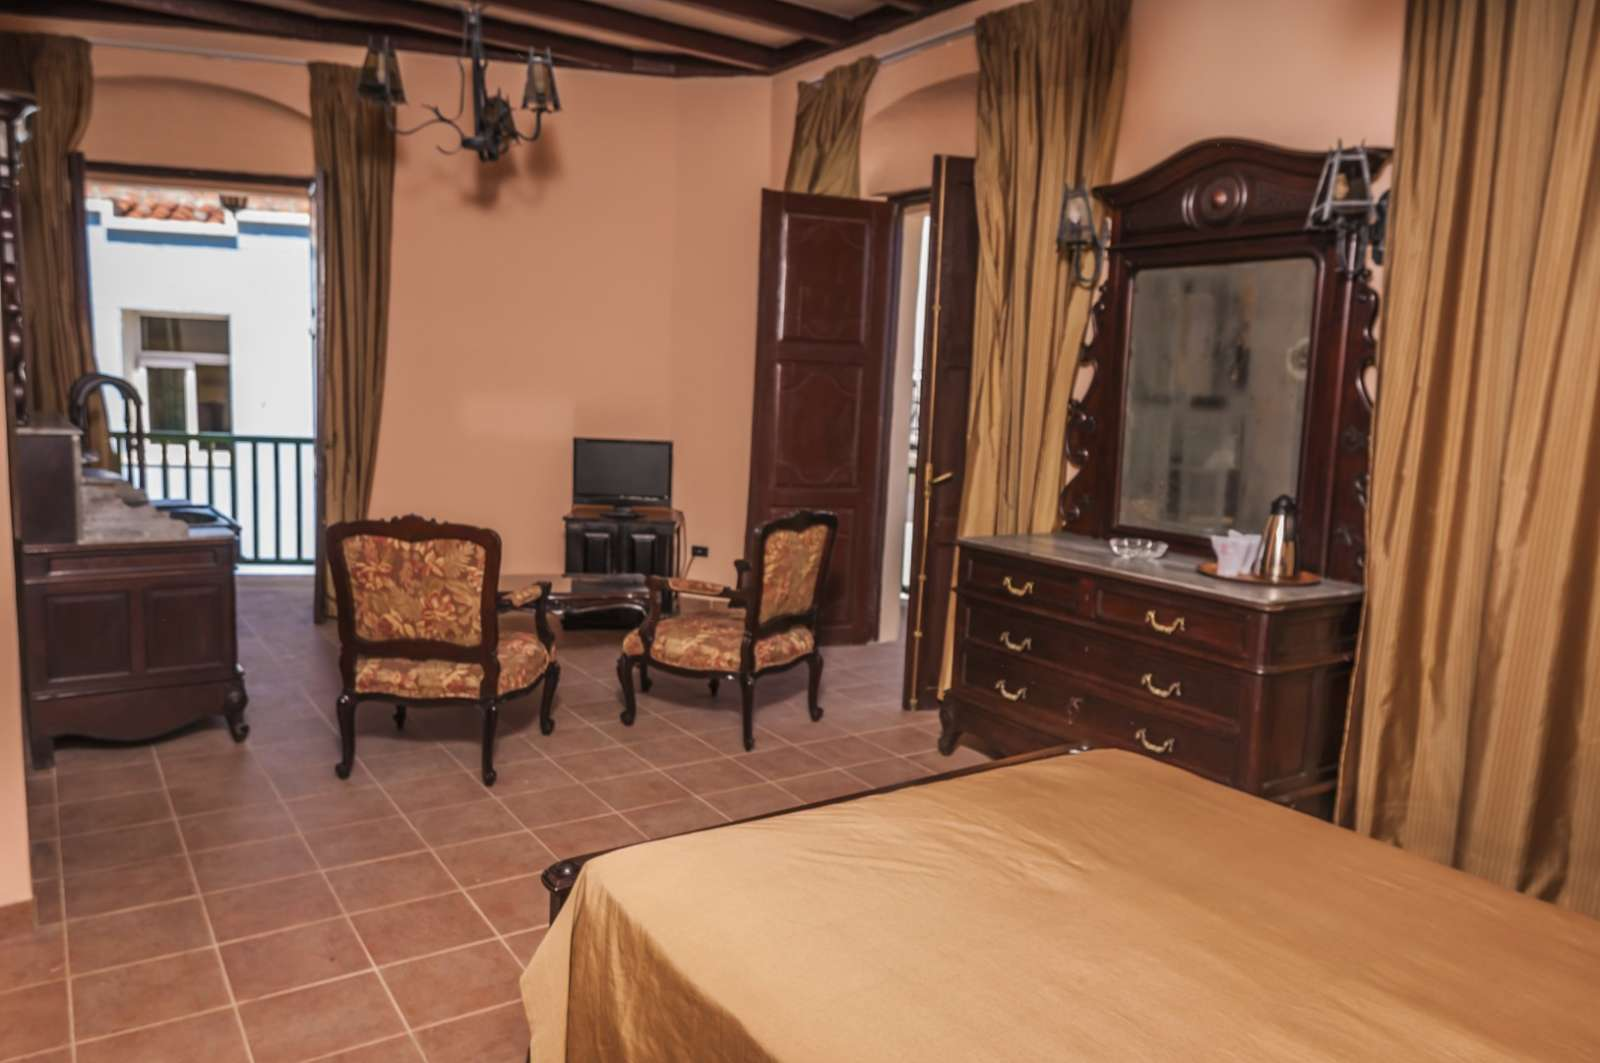 Bedroom at Camino de Hierro